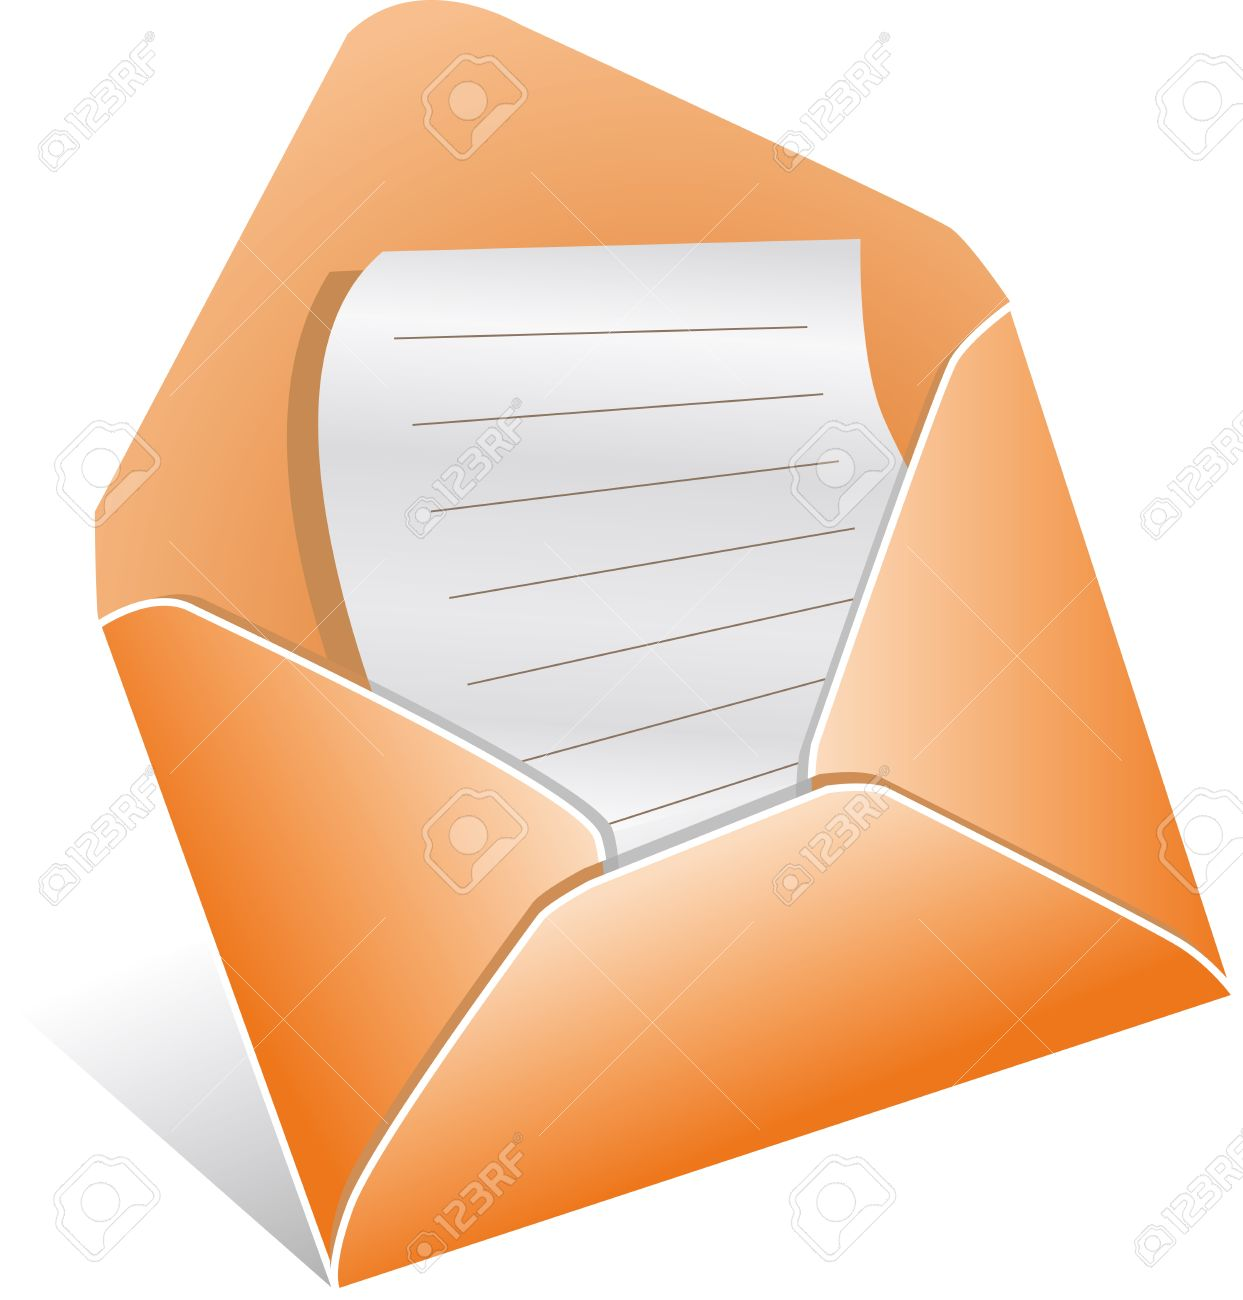 illutration of open envelope with letter, vector royalty free